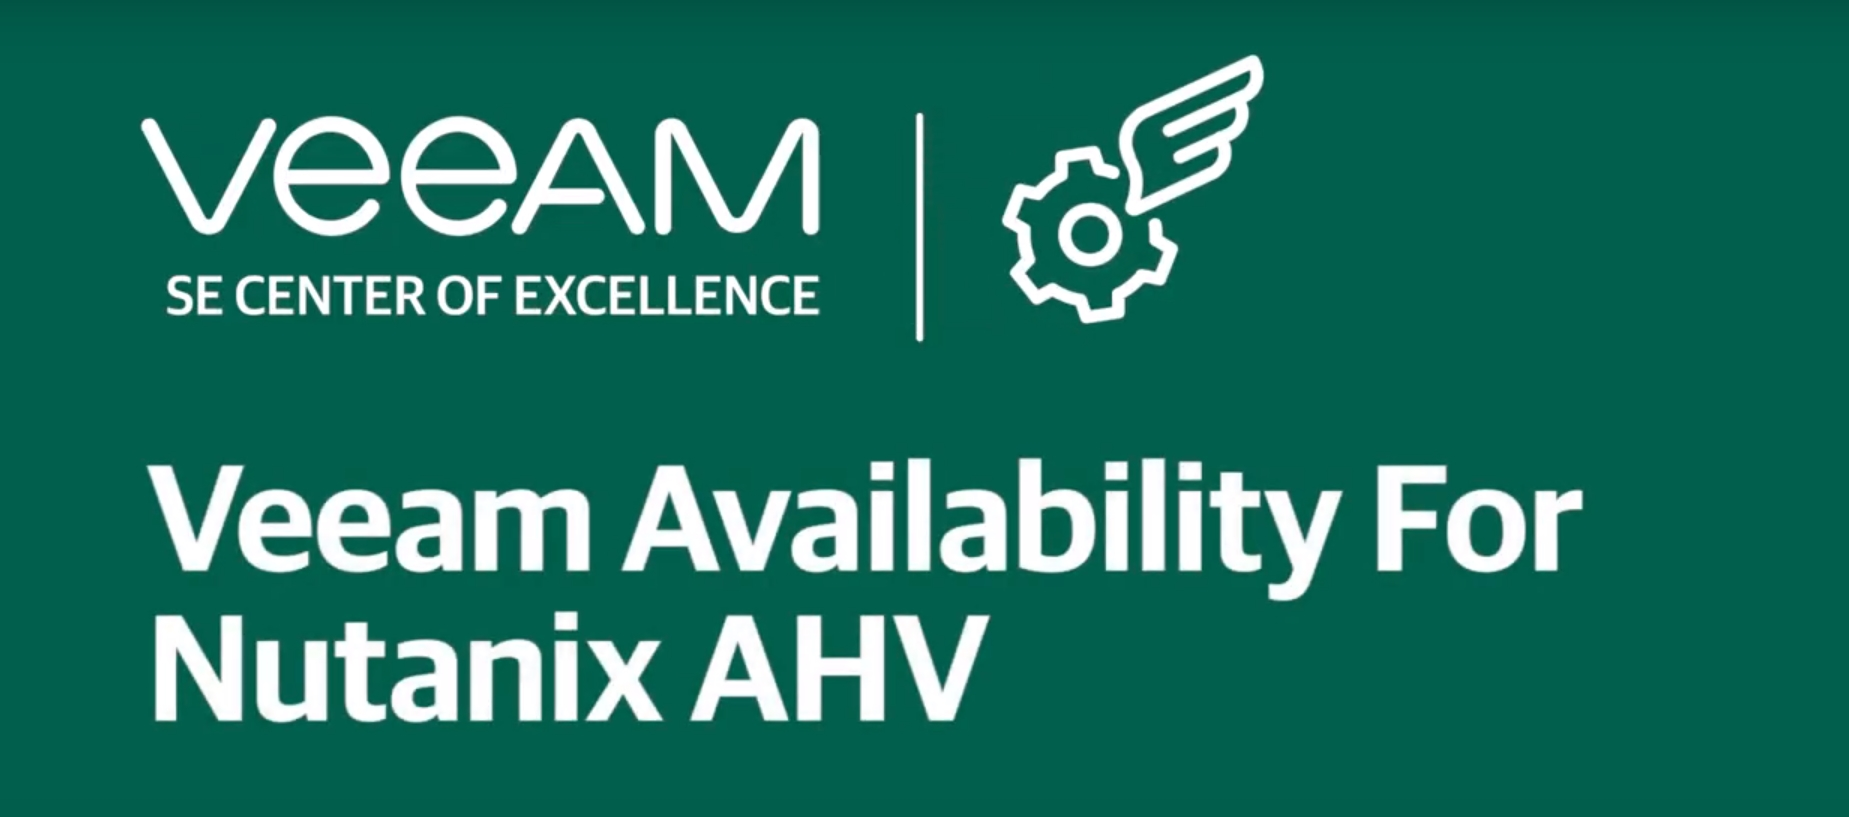 Modernize your Data Center with Veeam Availability for Nutanix AHV